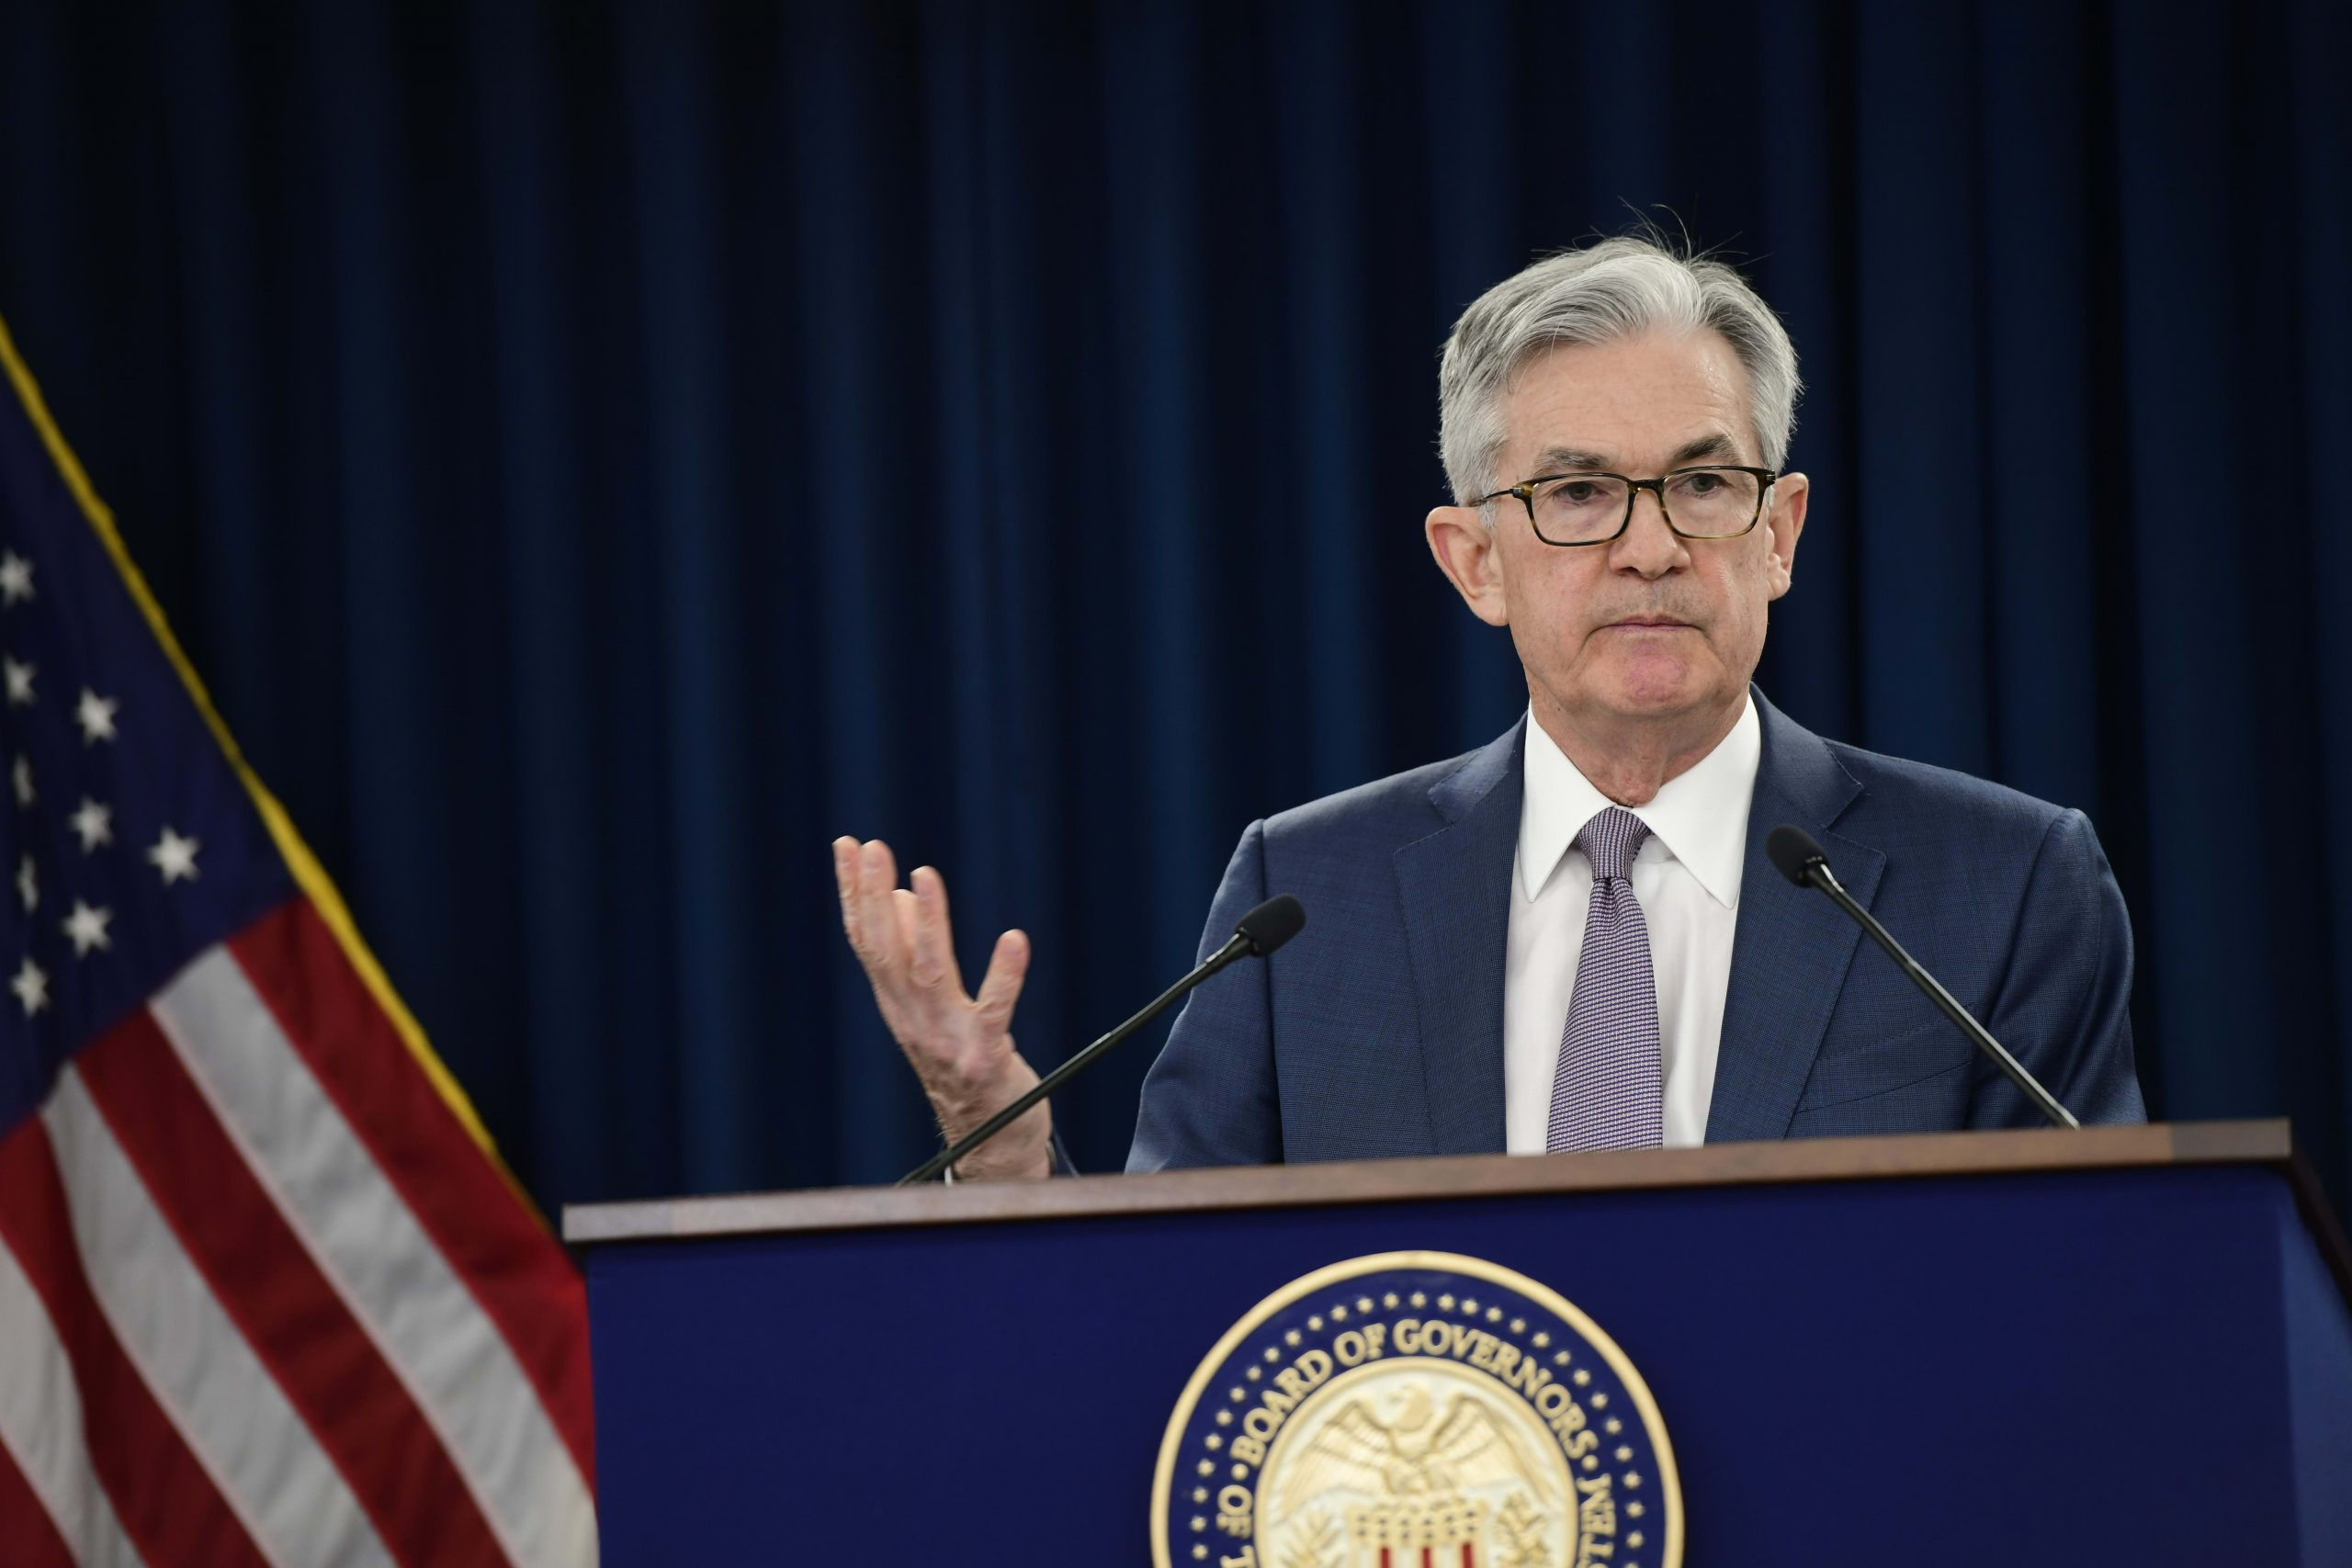 Powell says the economy will likely need more support from the Fed for the recovery to be 'robust'